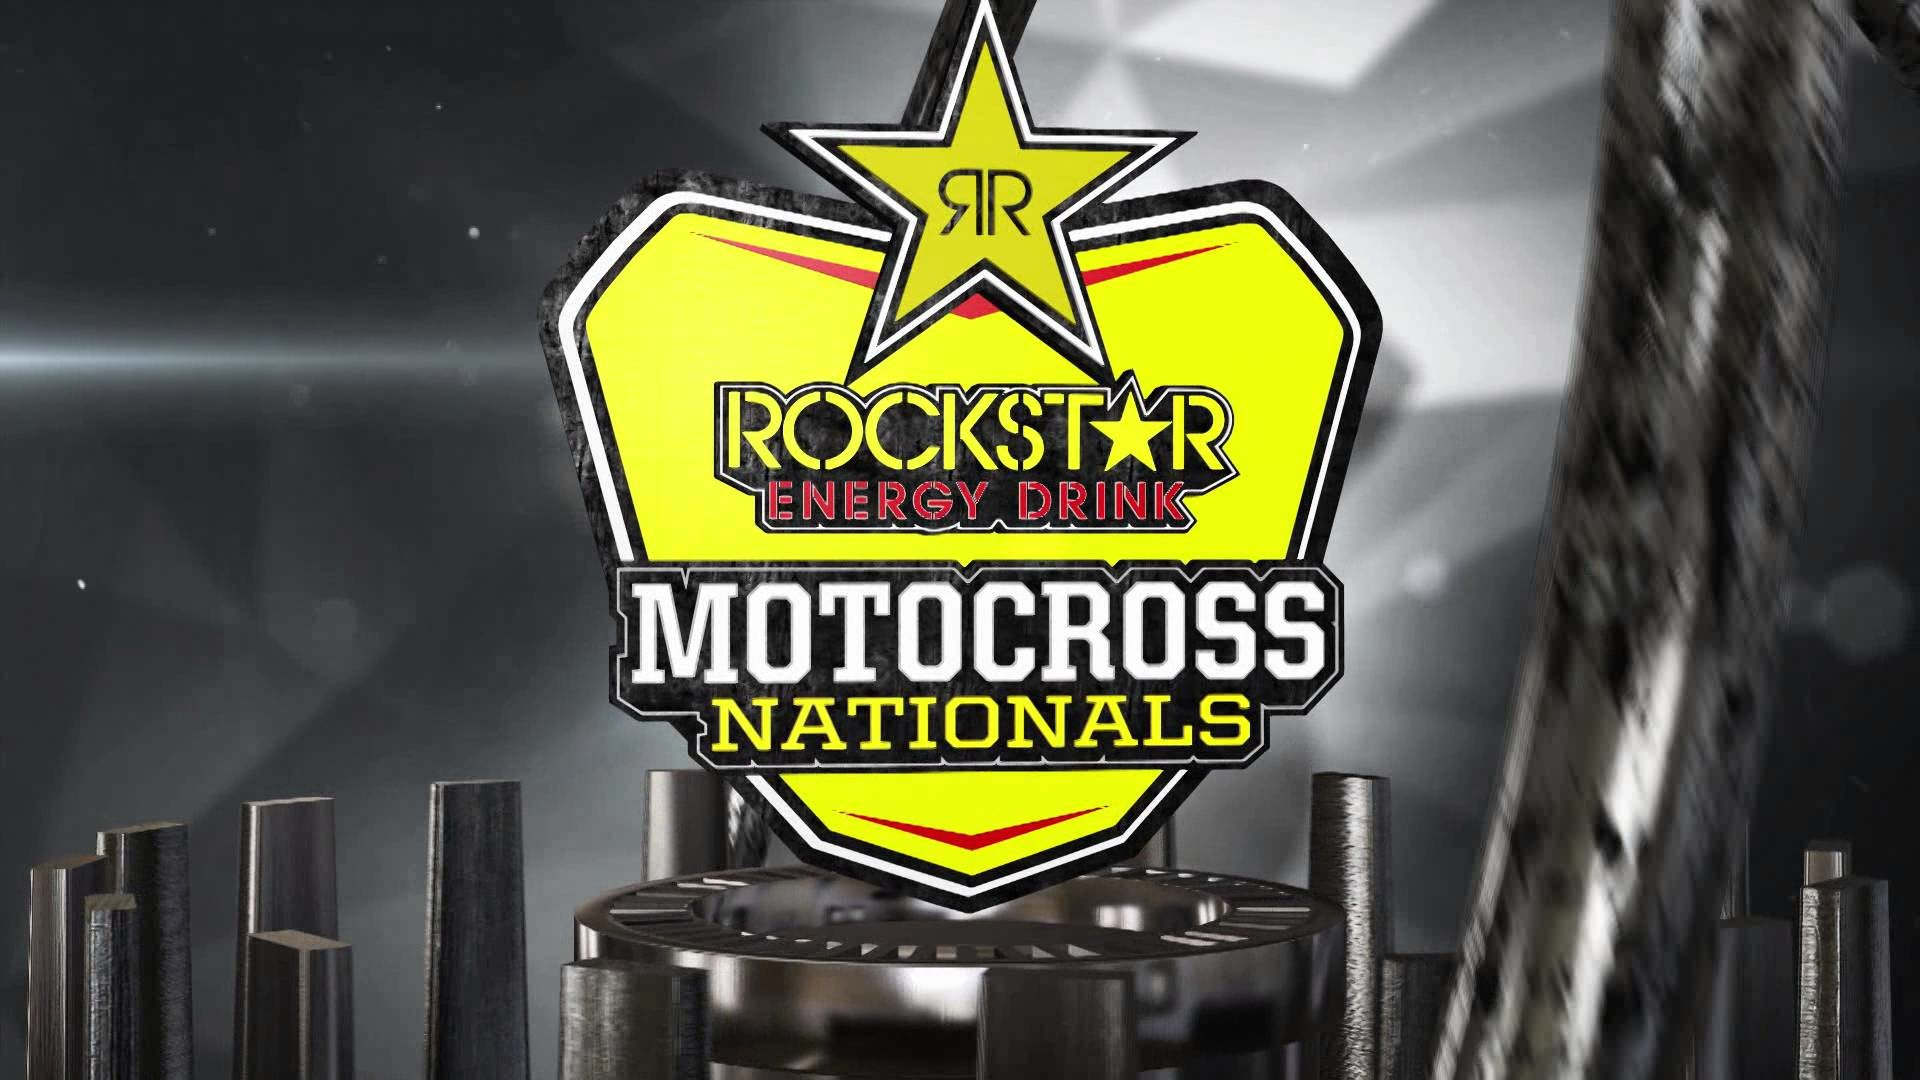 Res: 1920x1080, Rockstar Energy Wallpapers 11 - 1920 X 1080